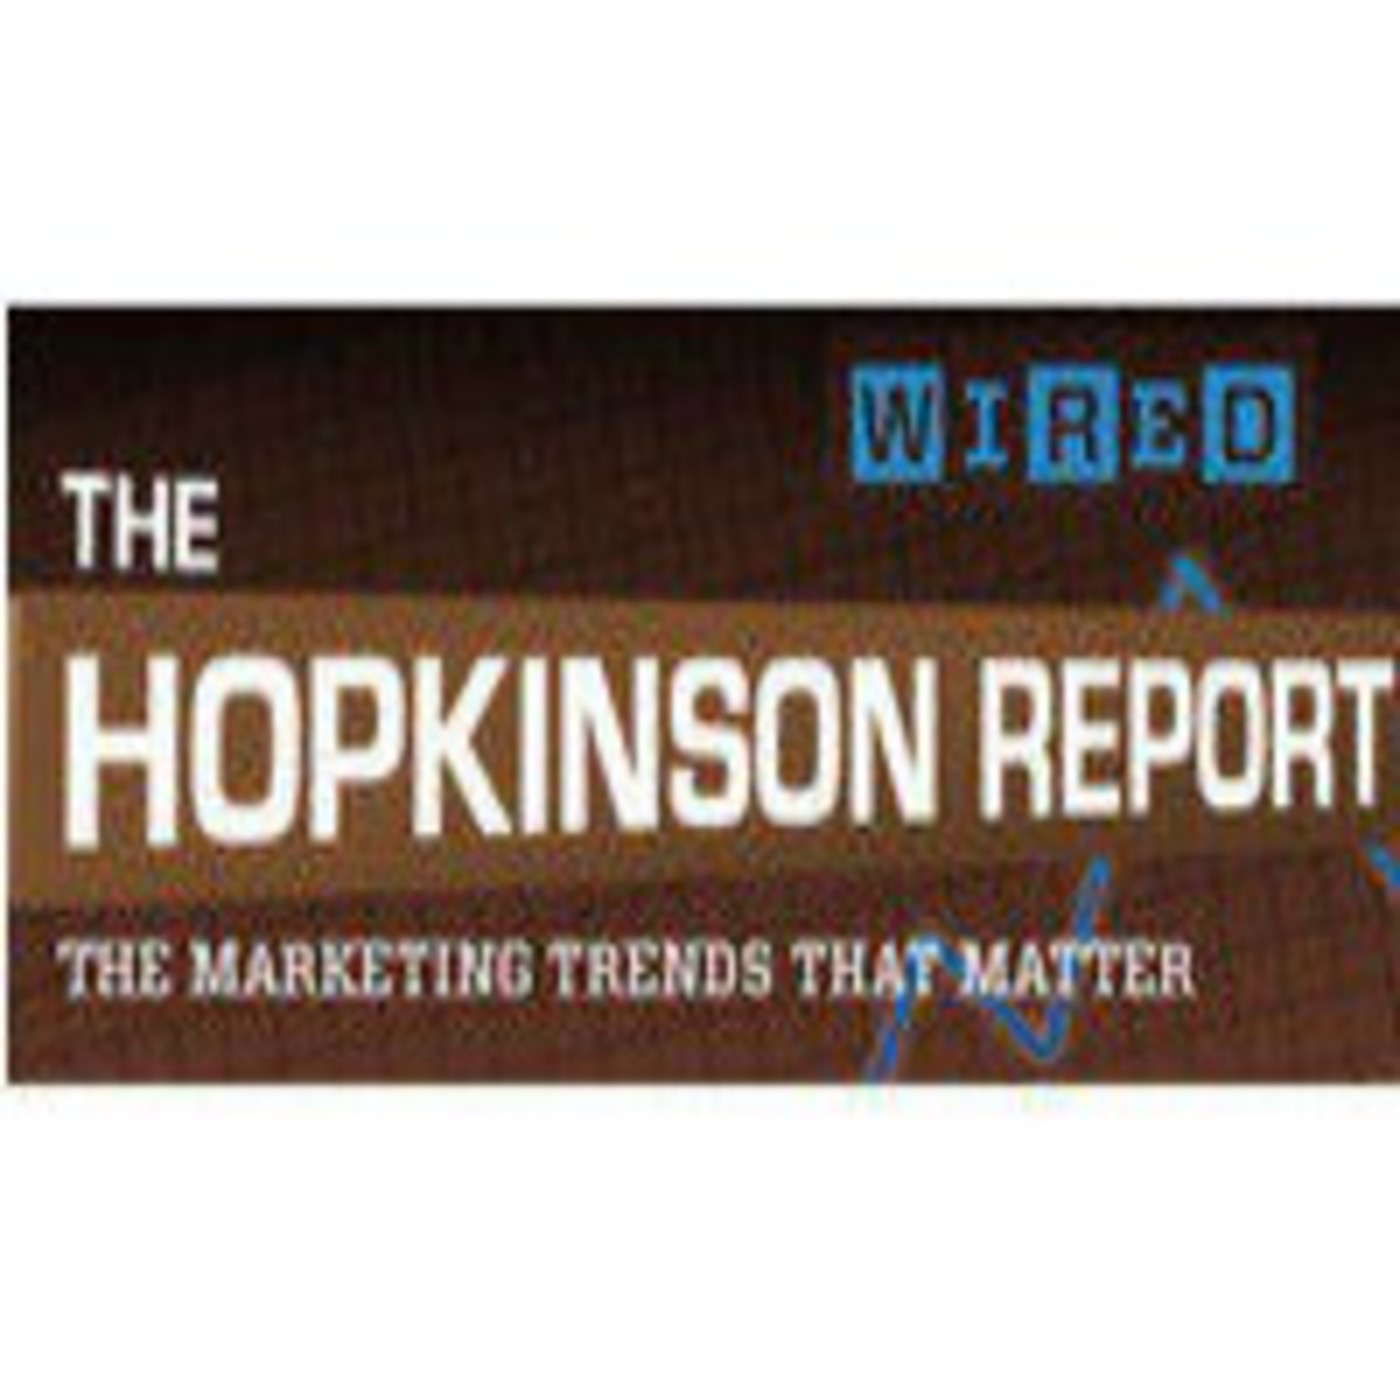 The Hopkinson Report Episode 145: How to host a successful sponsored event